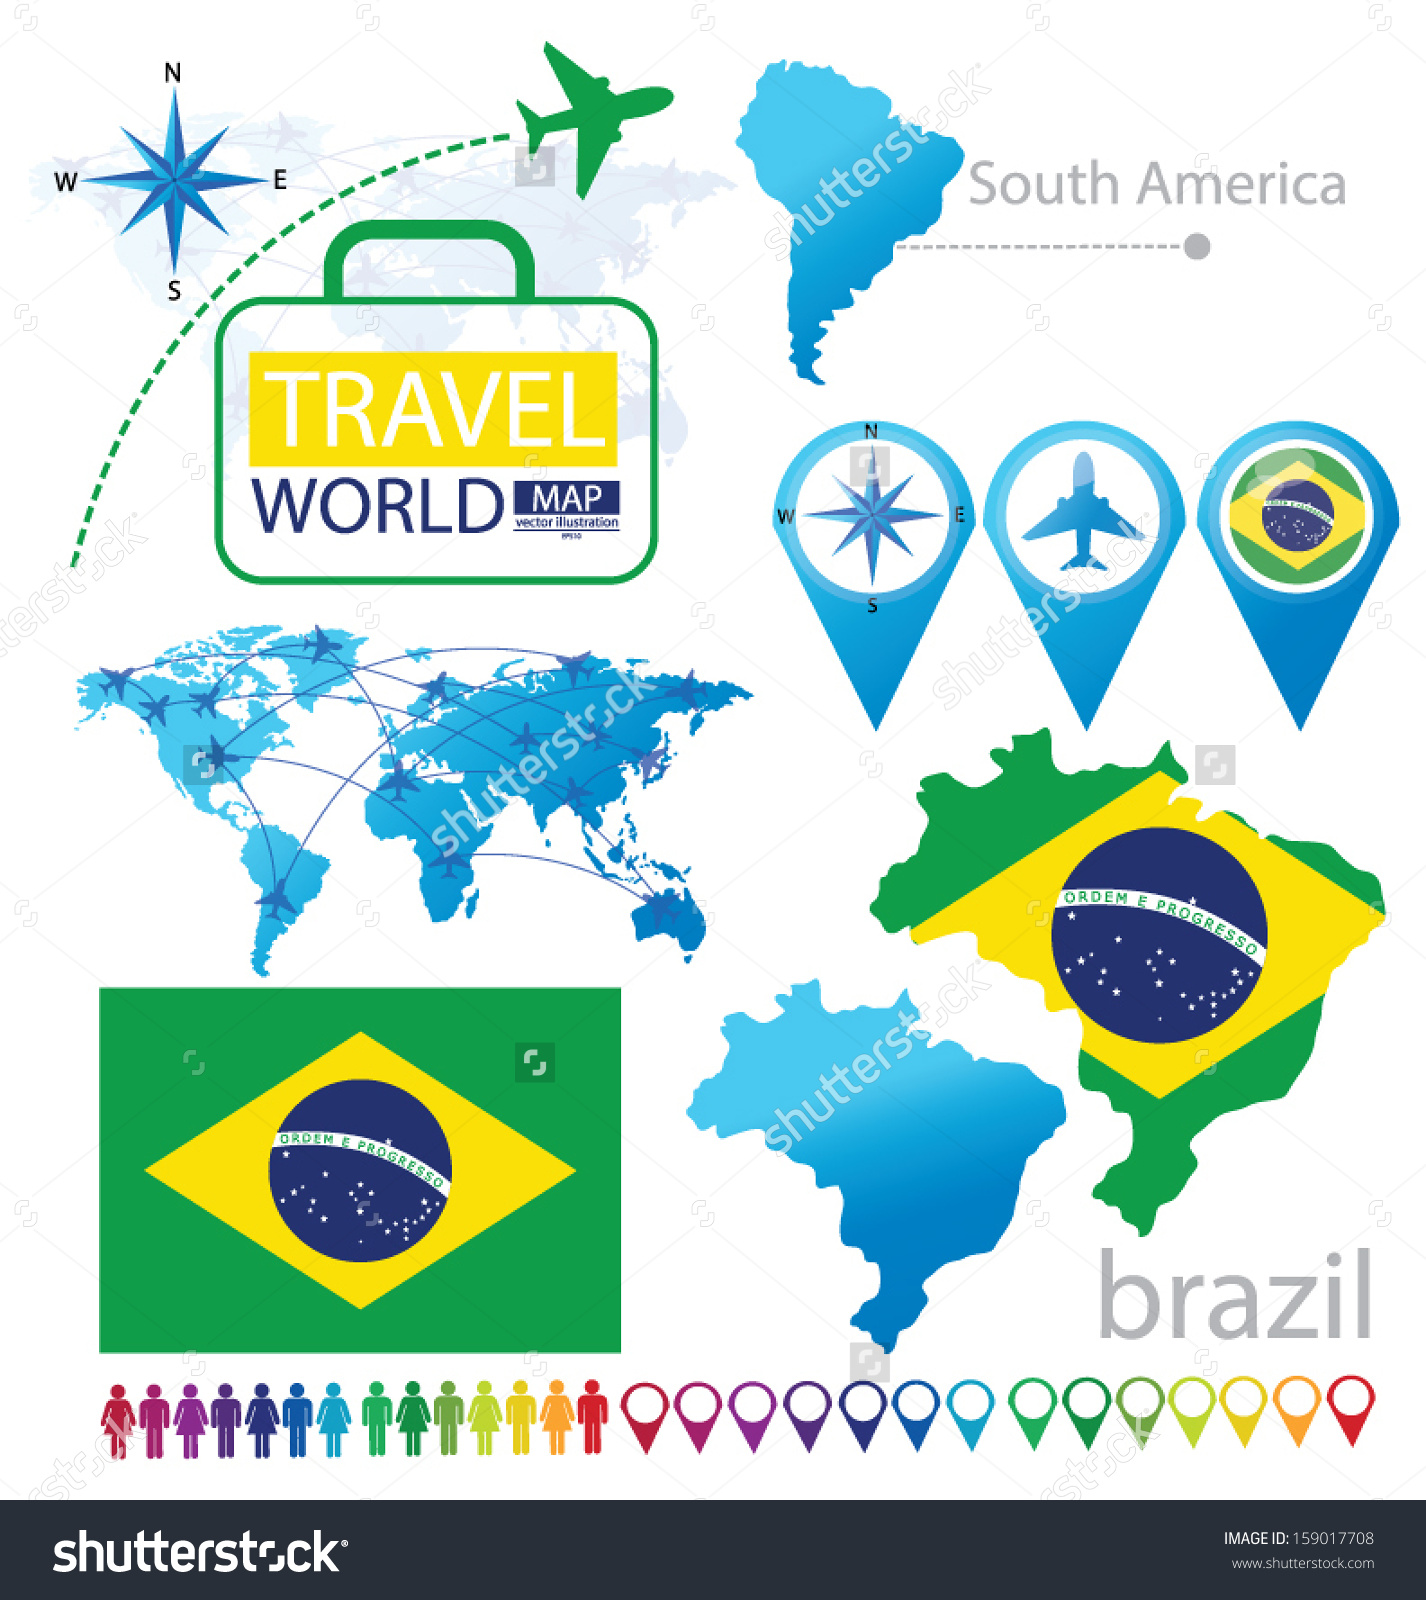 Technology Brazil Stock Photos, Images, & Pictures.